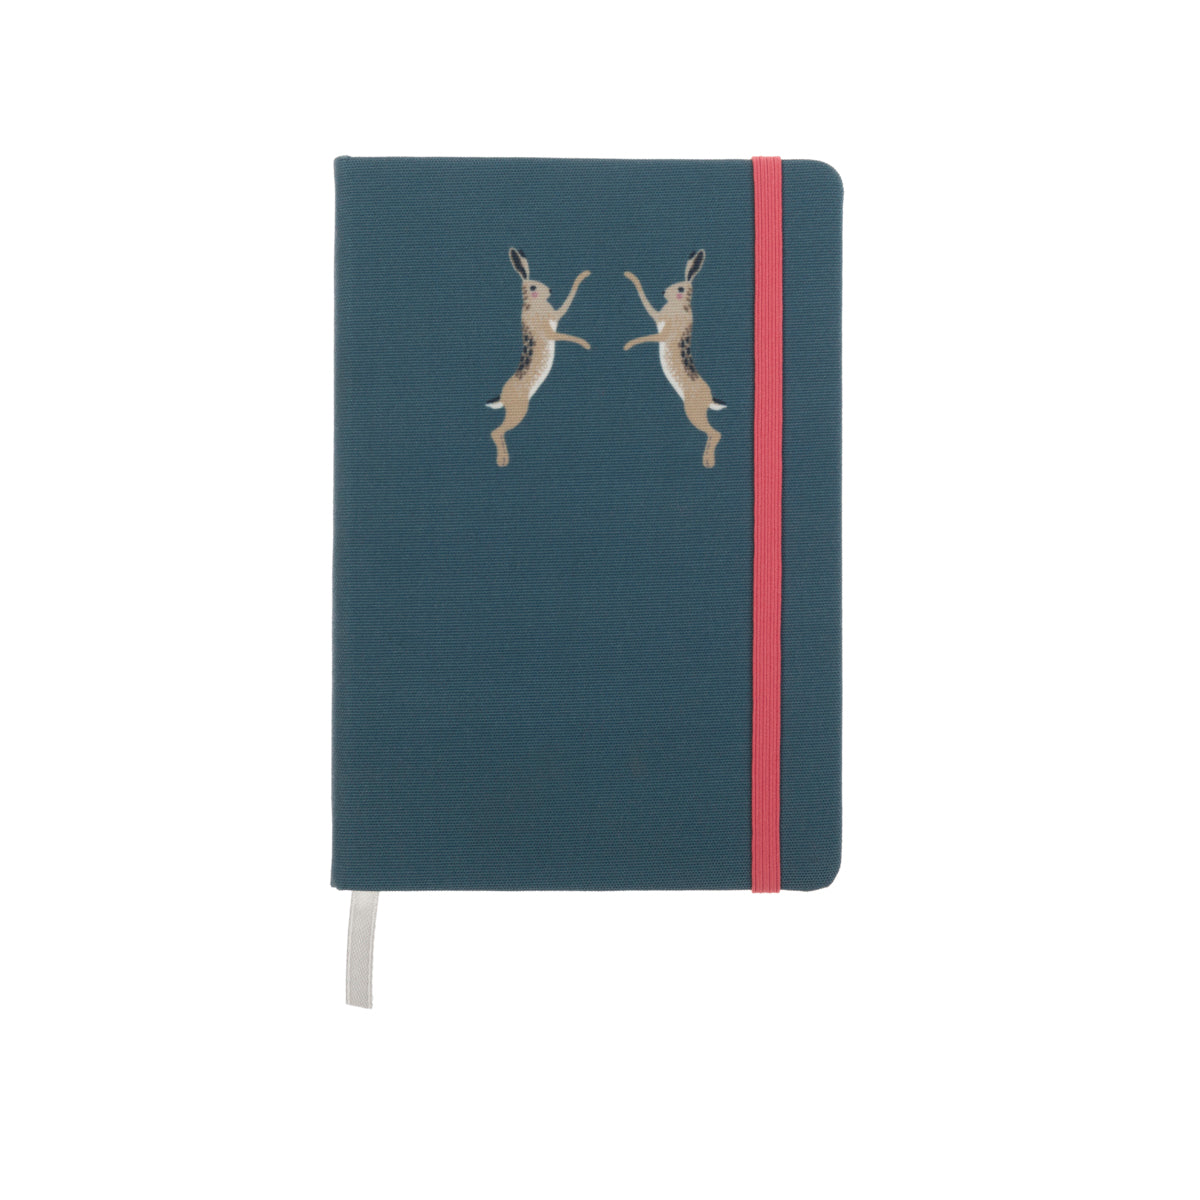 Hare Small Fabric Notebook by Sophie Allport